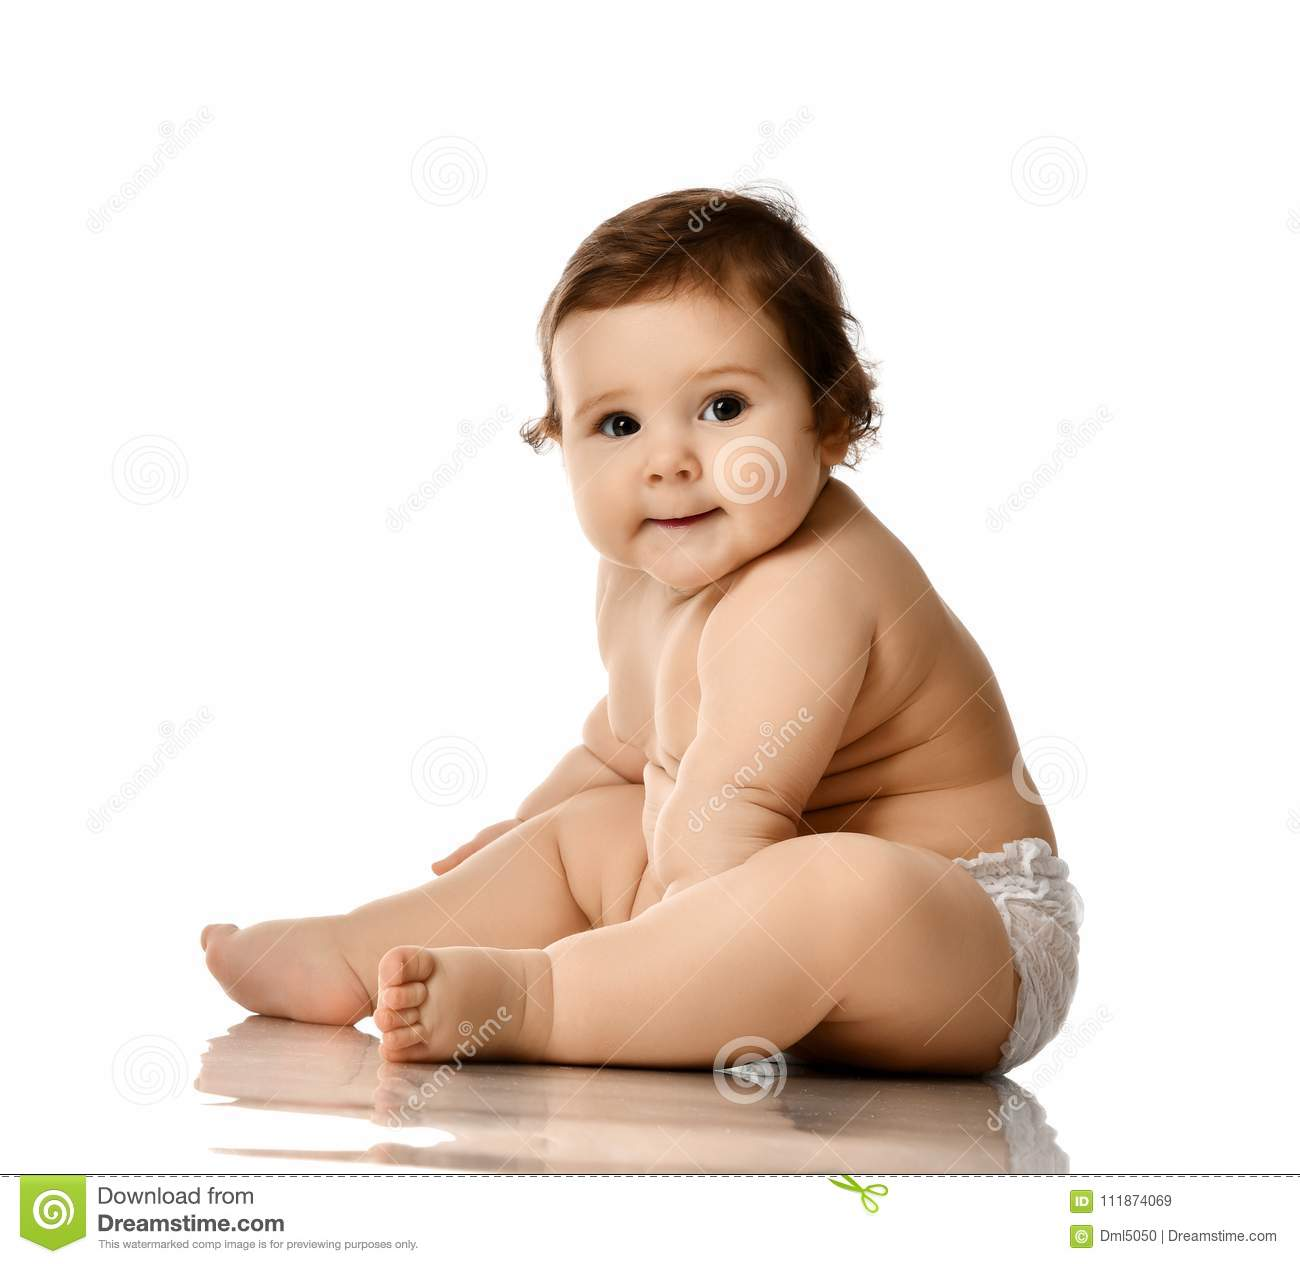 Infant baby girl toddler fat over weight sitting happy smiling